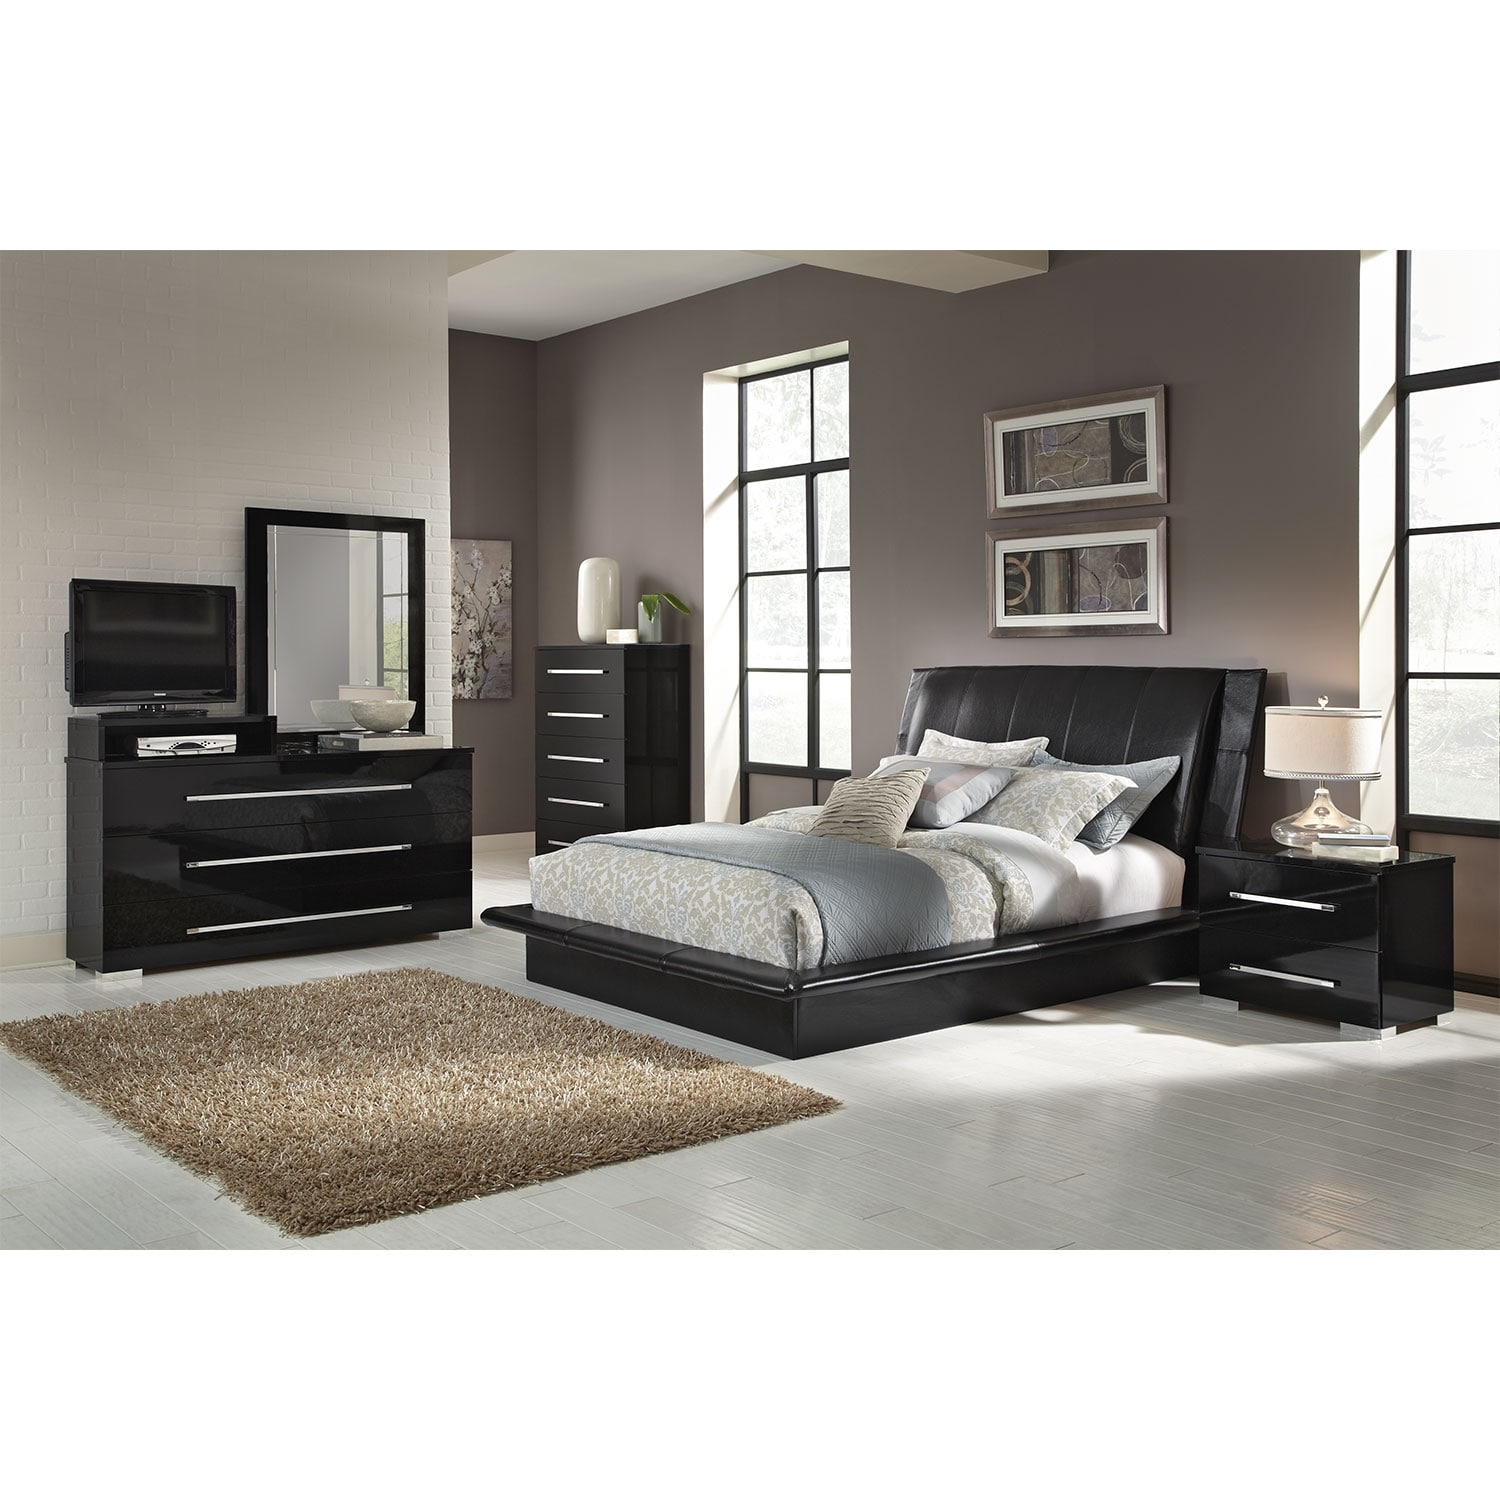 The Dimora Upholstered Collection Black Value City